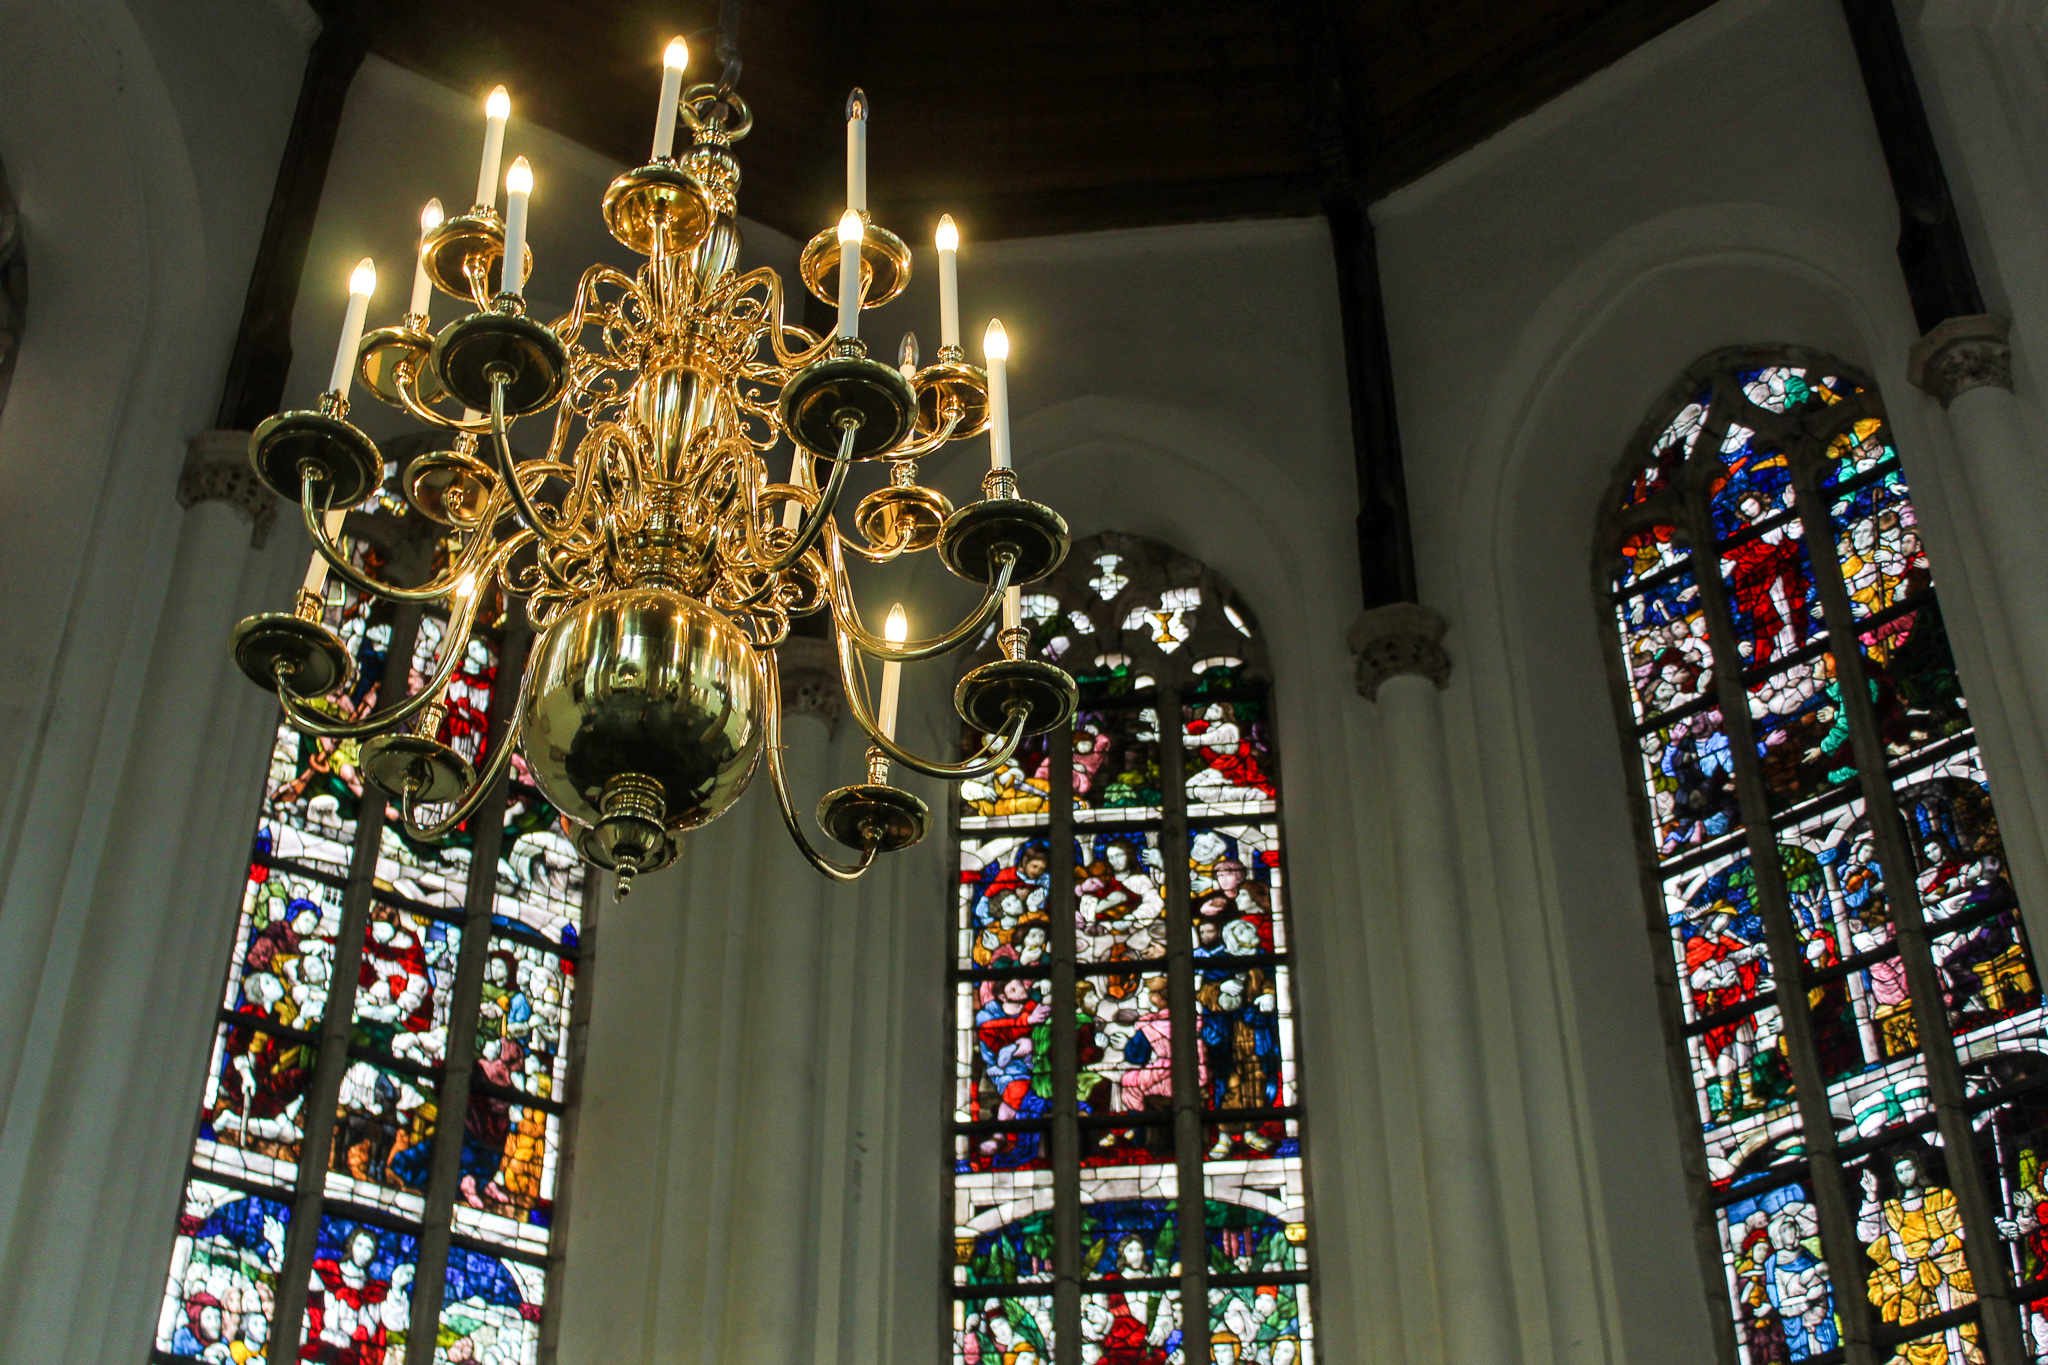 one week in the netherlands: visiting the church in delft